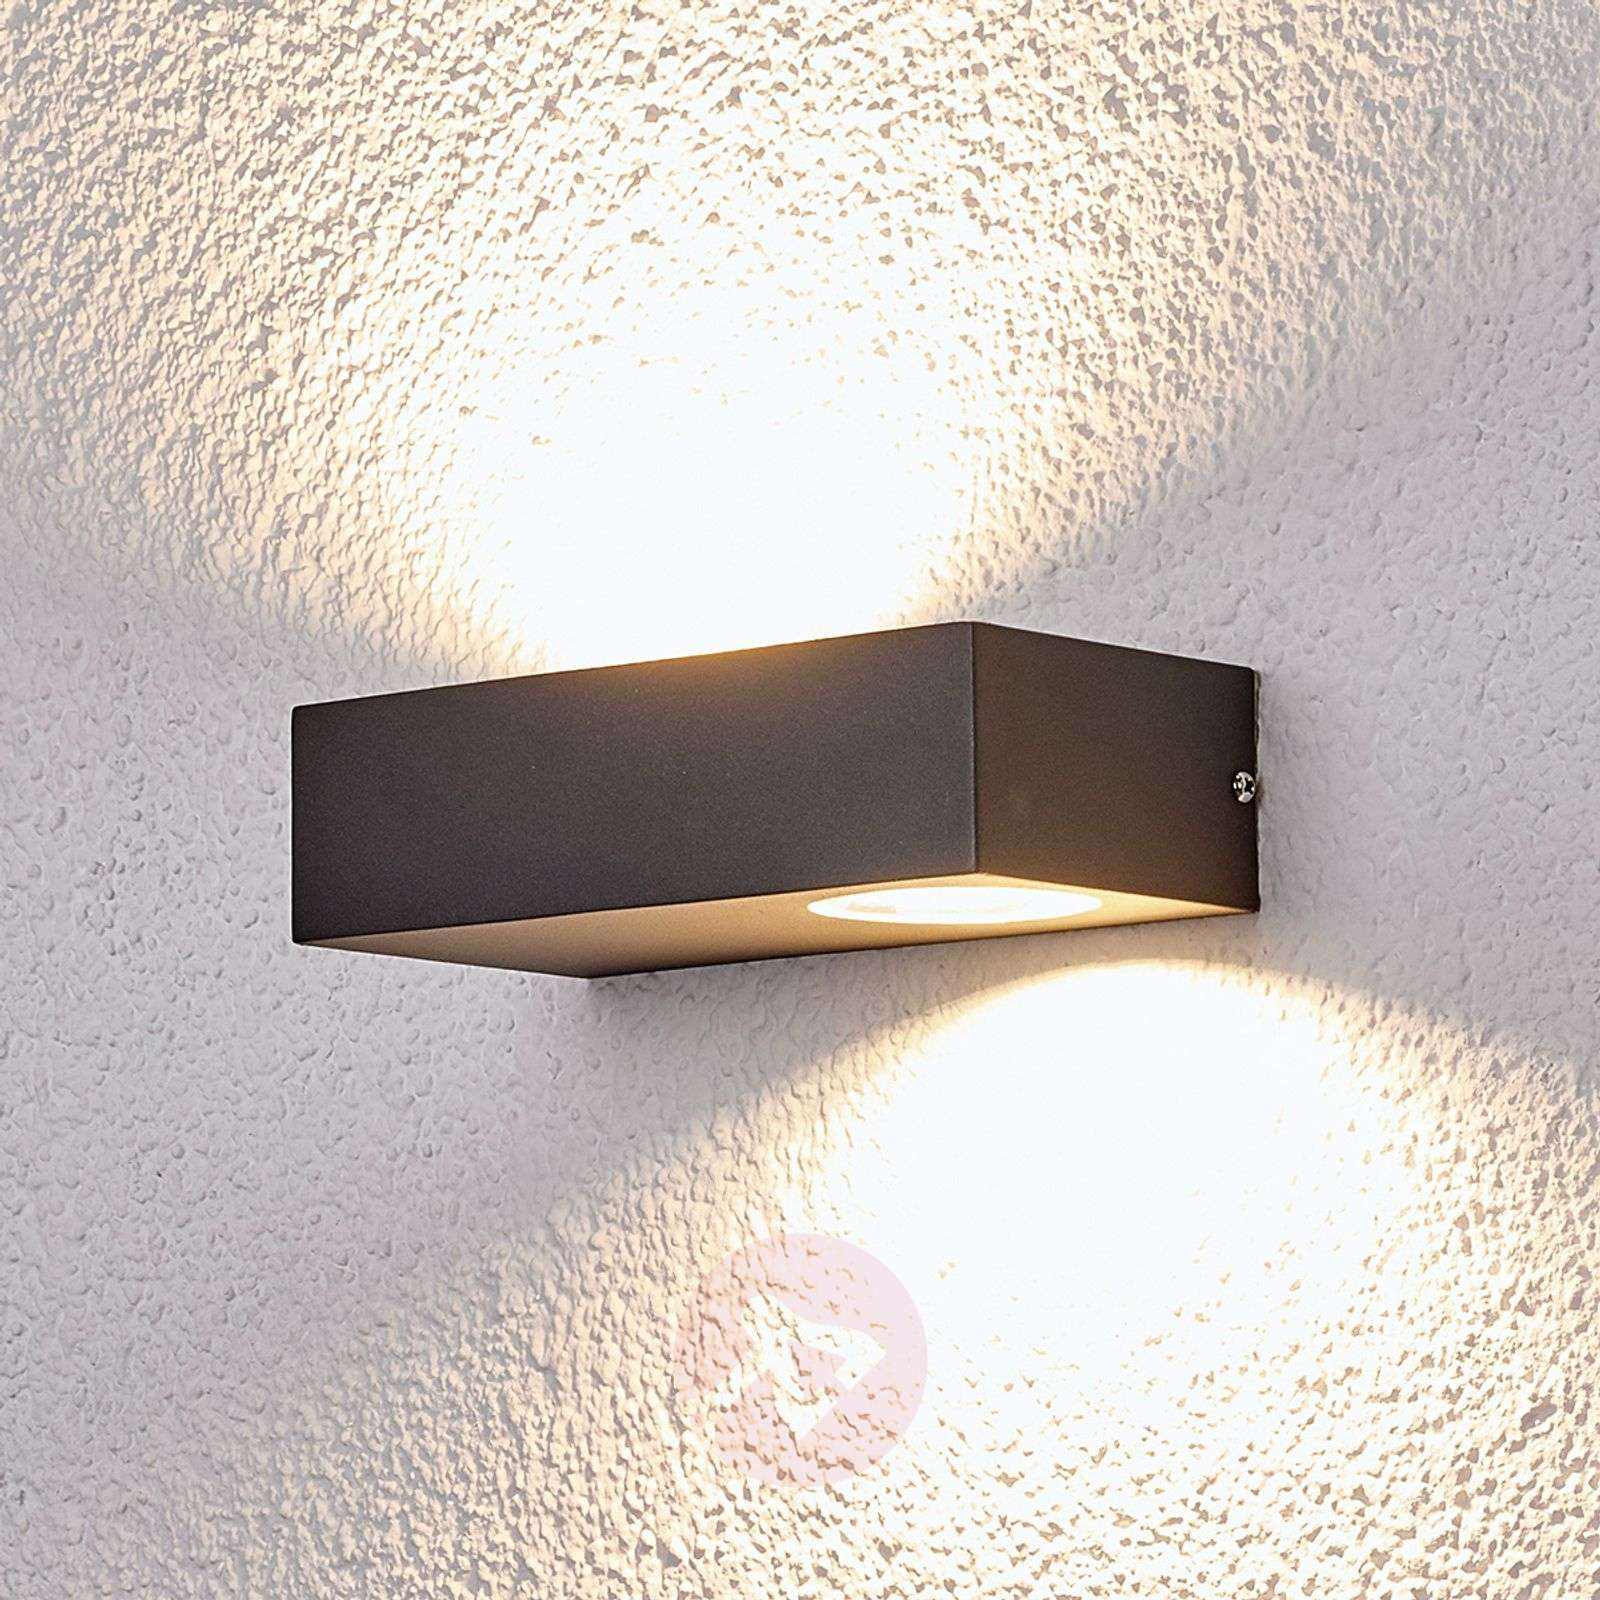 Acquista applique led da esterni loredana luce deffetto lampade.it